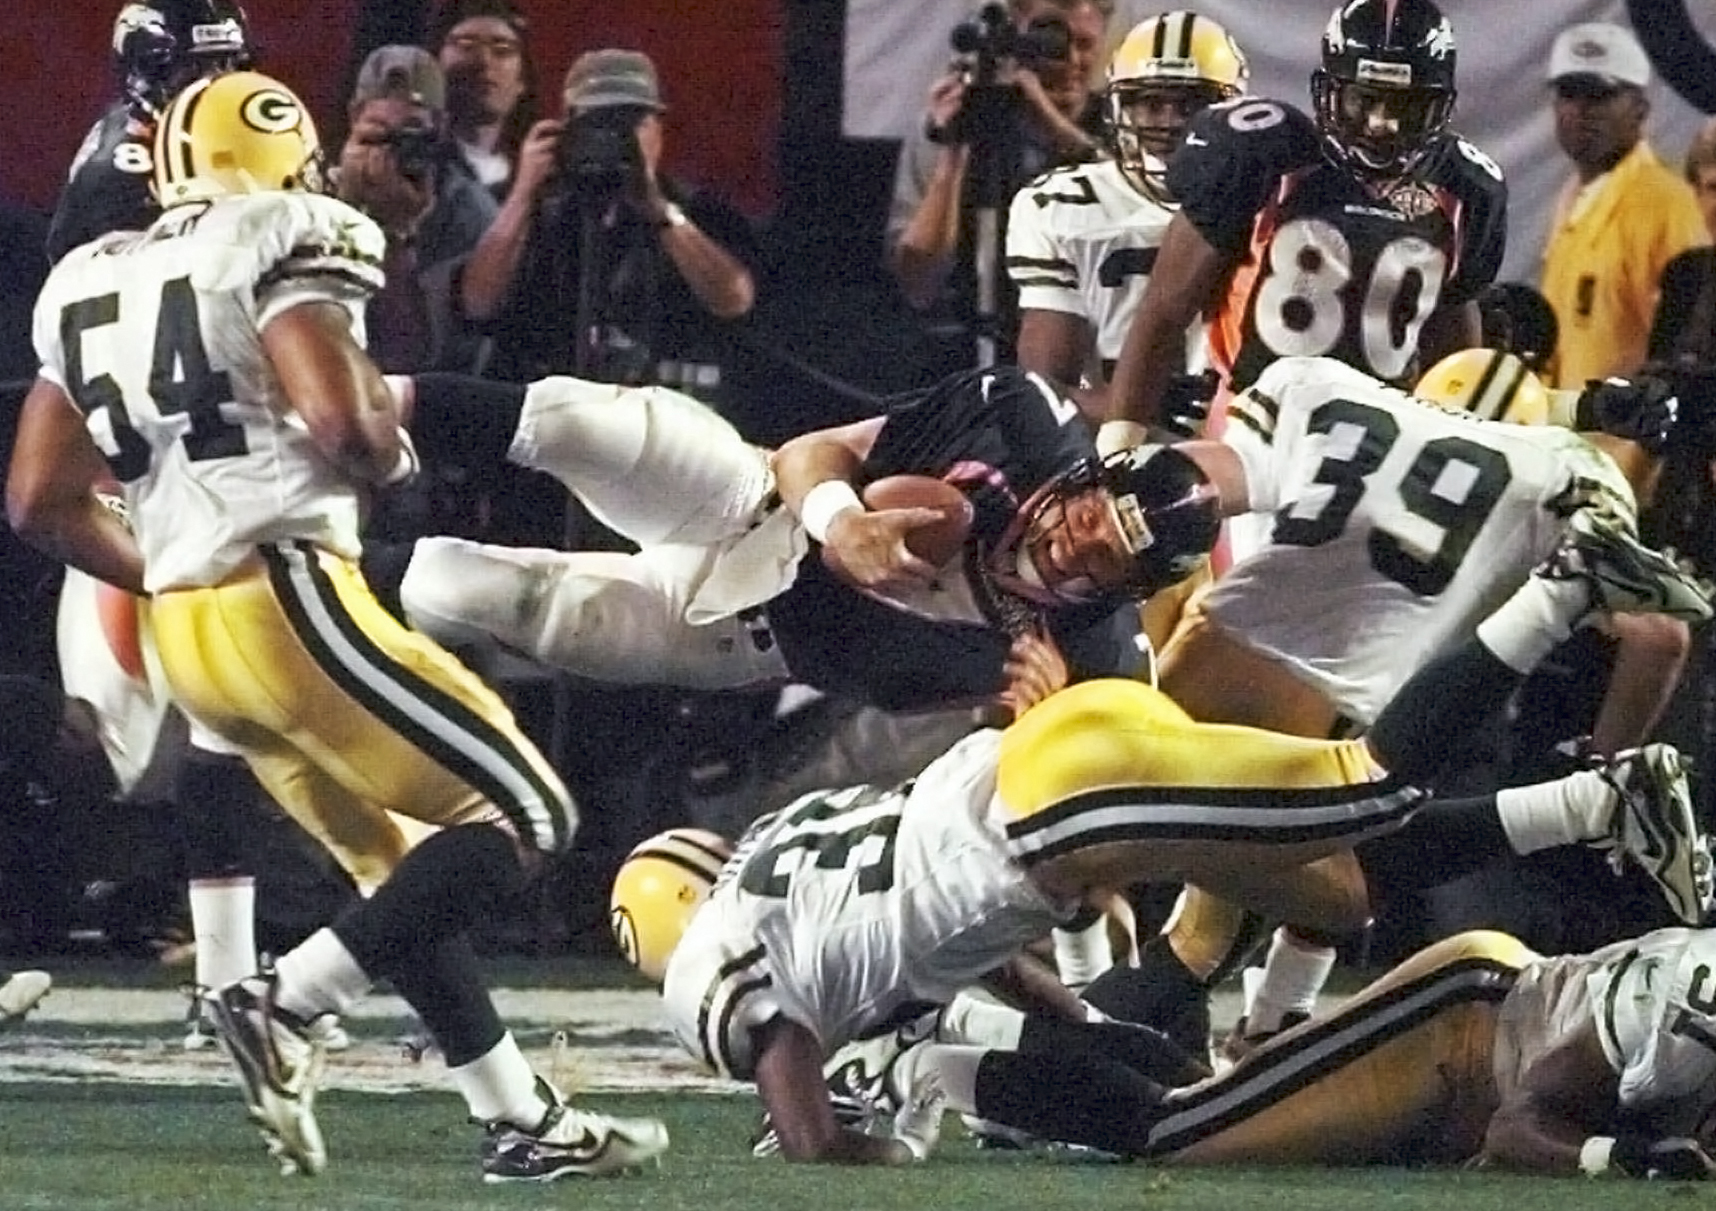 FILE - In this Jan. 25, 1998, file photo, Denver Broncos quarterback John Elway is upended Green Bay Packers' Brian Williams (51) and Elroy Butler (36) while running for a first down during the third quarter of NFL football's Super Bowl XXXII in San Diego